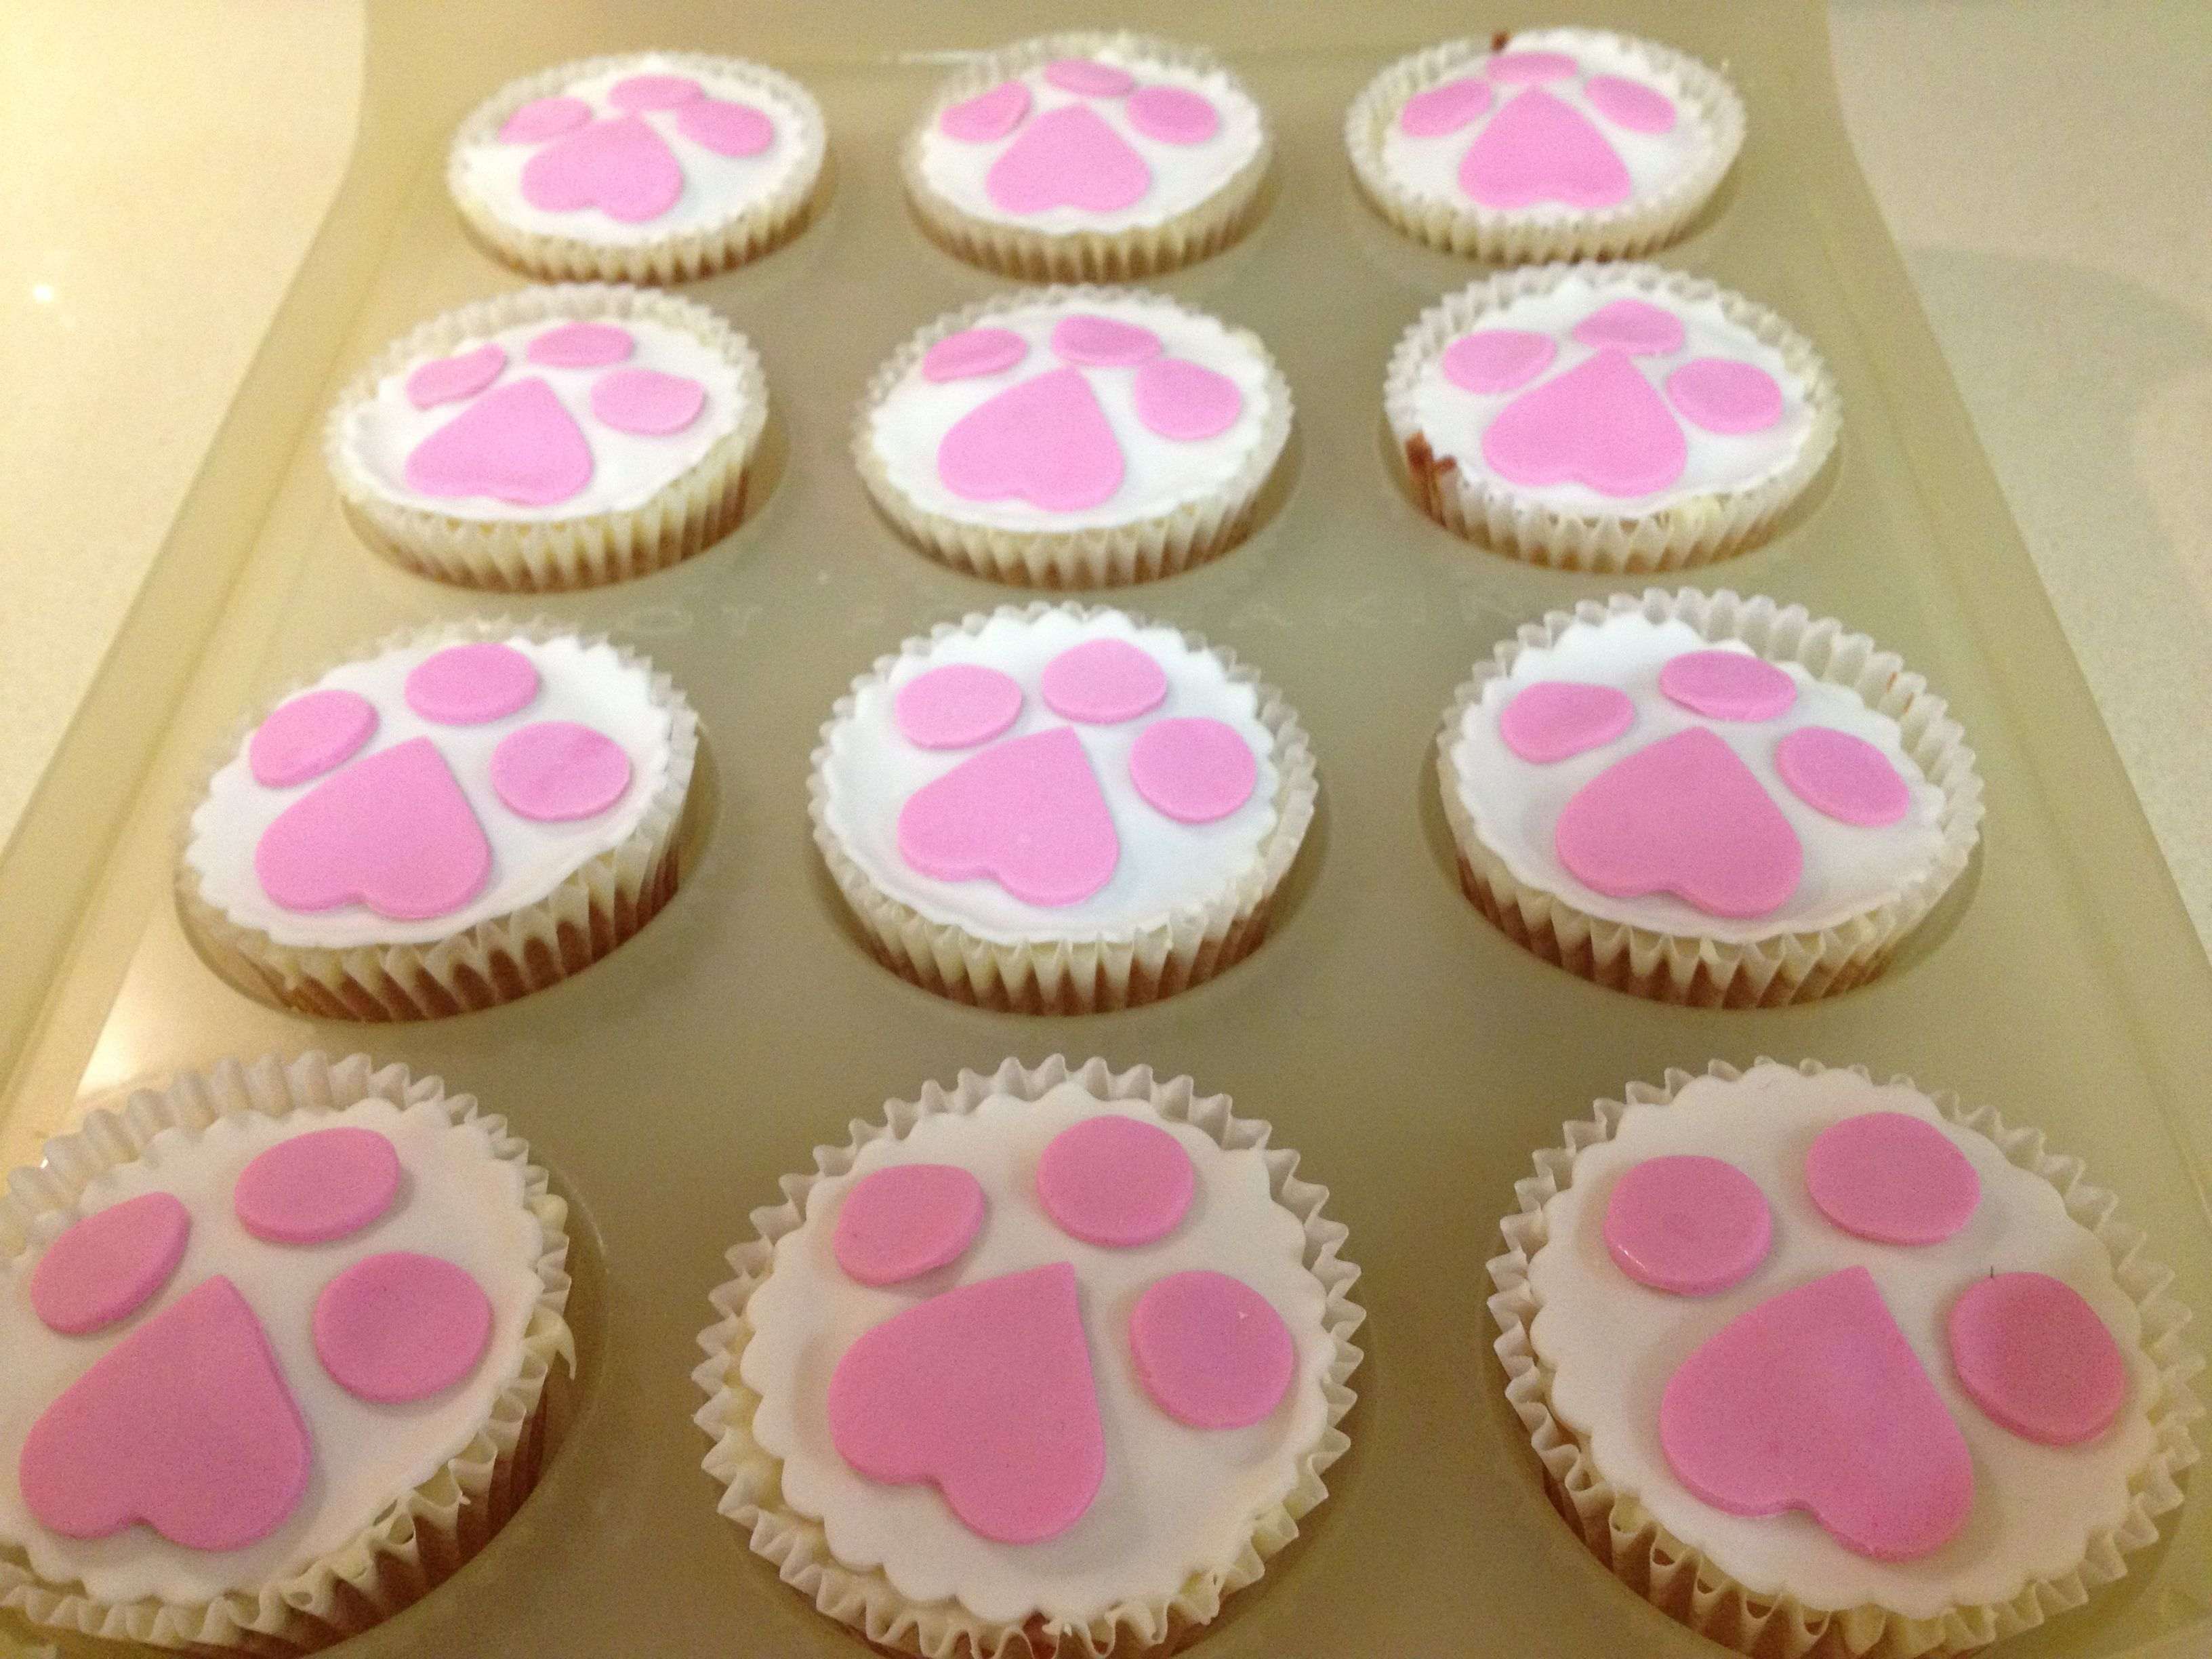 Doggy paw cupcakes